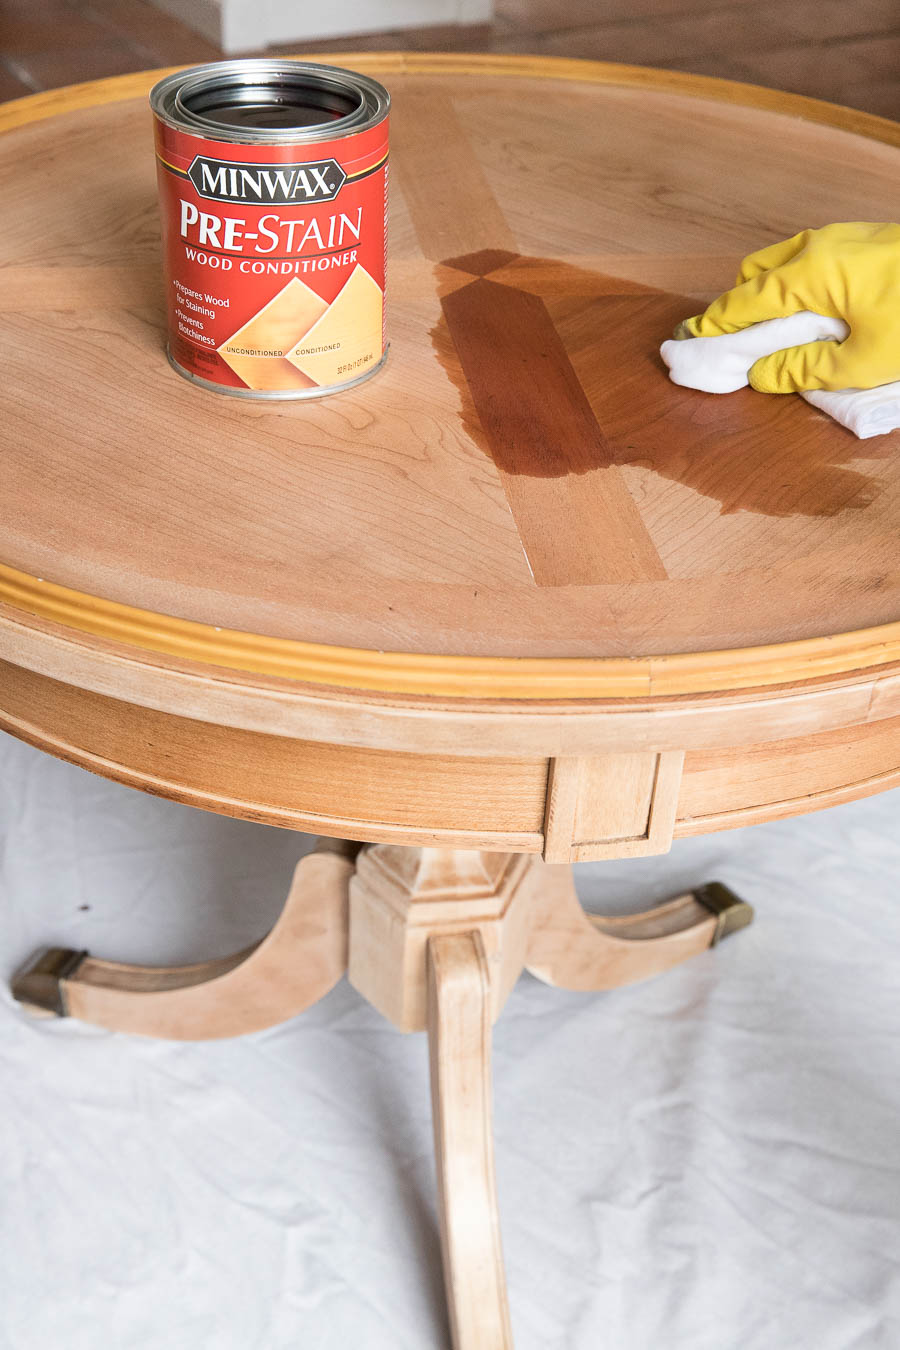 The must-do step to prevent streaking and blotching when you stain a table or other furniture - using Minwax Pre-stain Conditioner